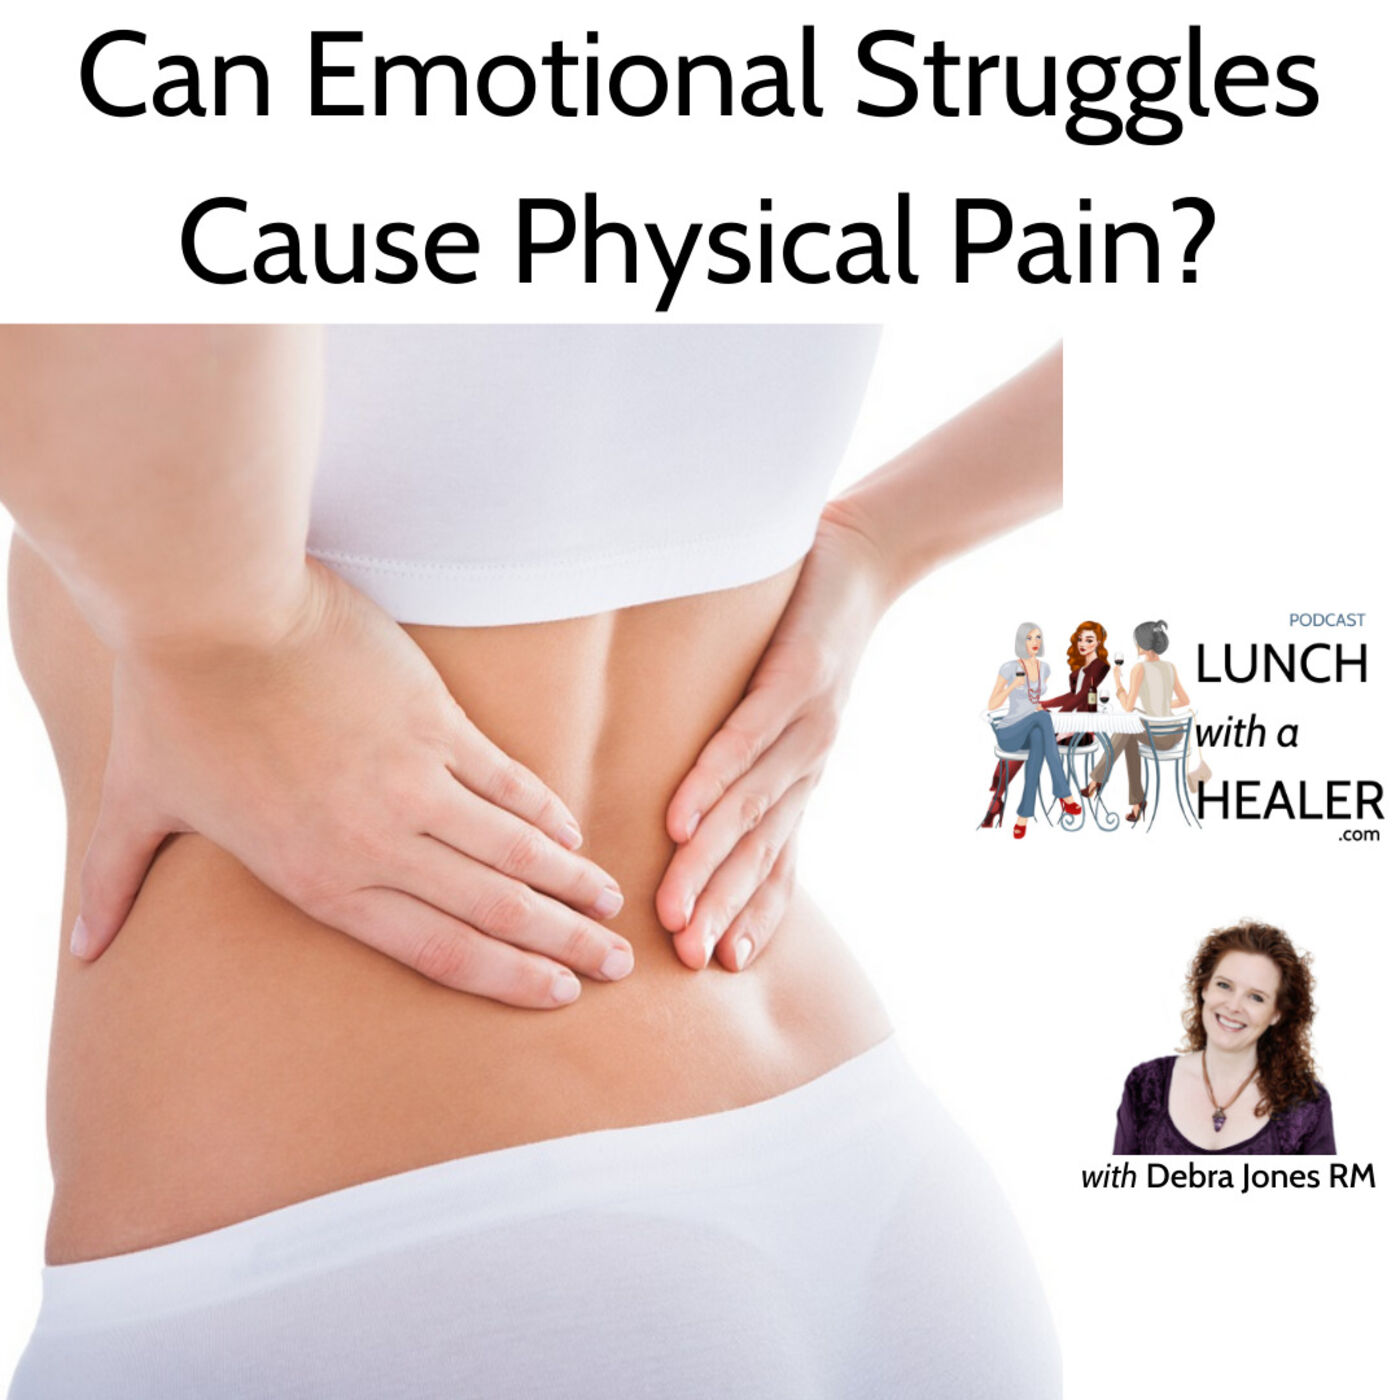 Can Emotional Struggles Cause Physical Pain?